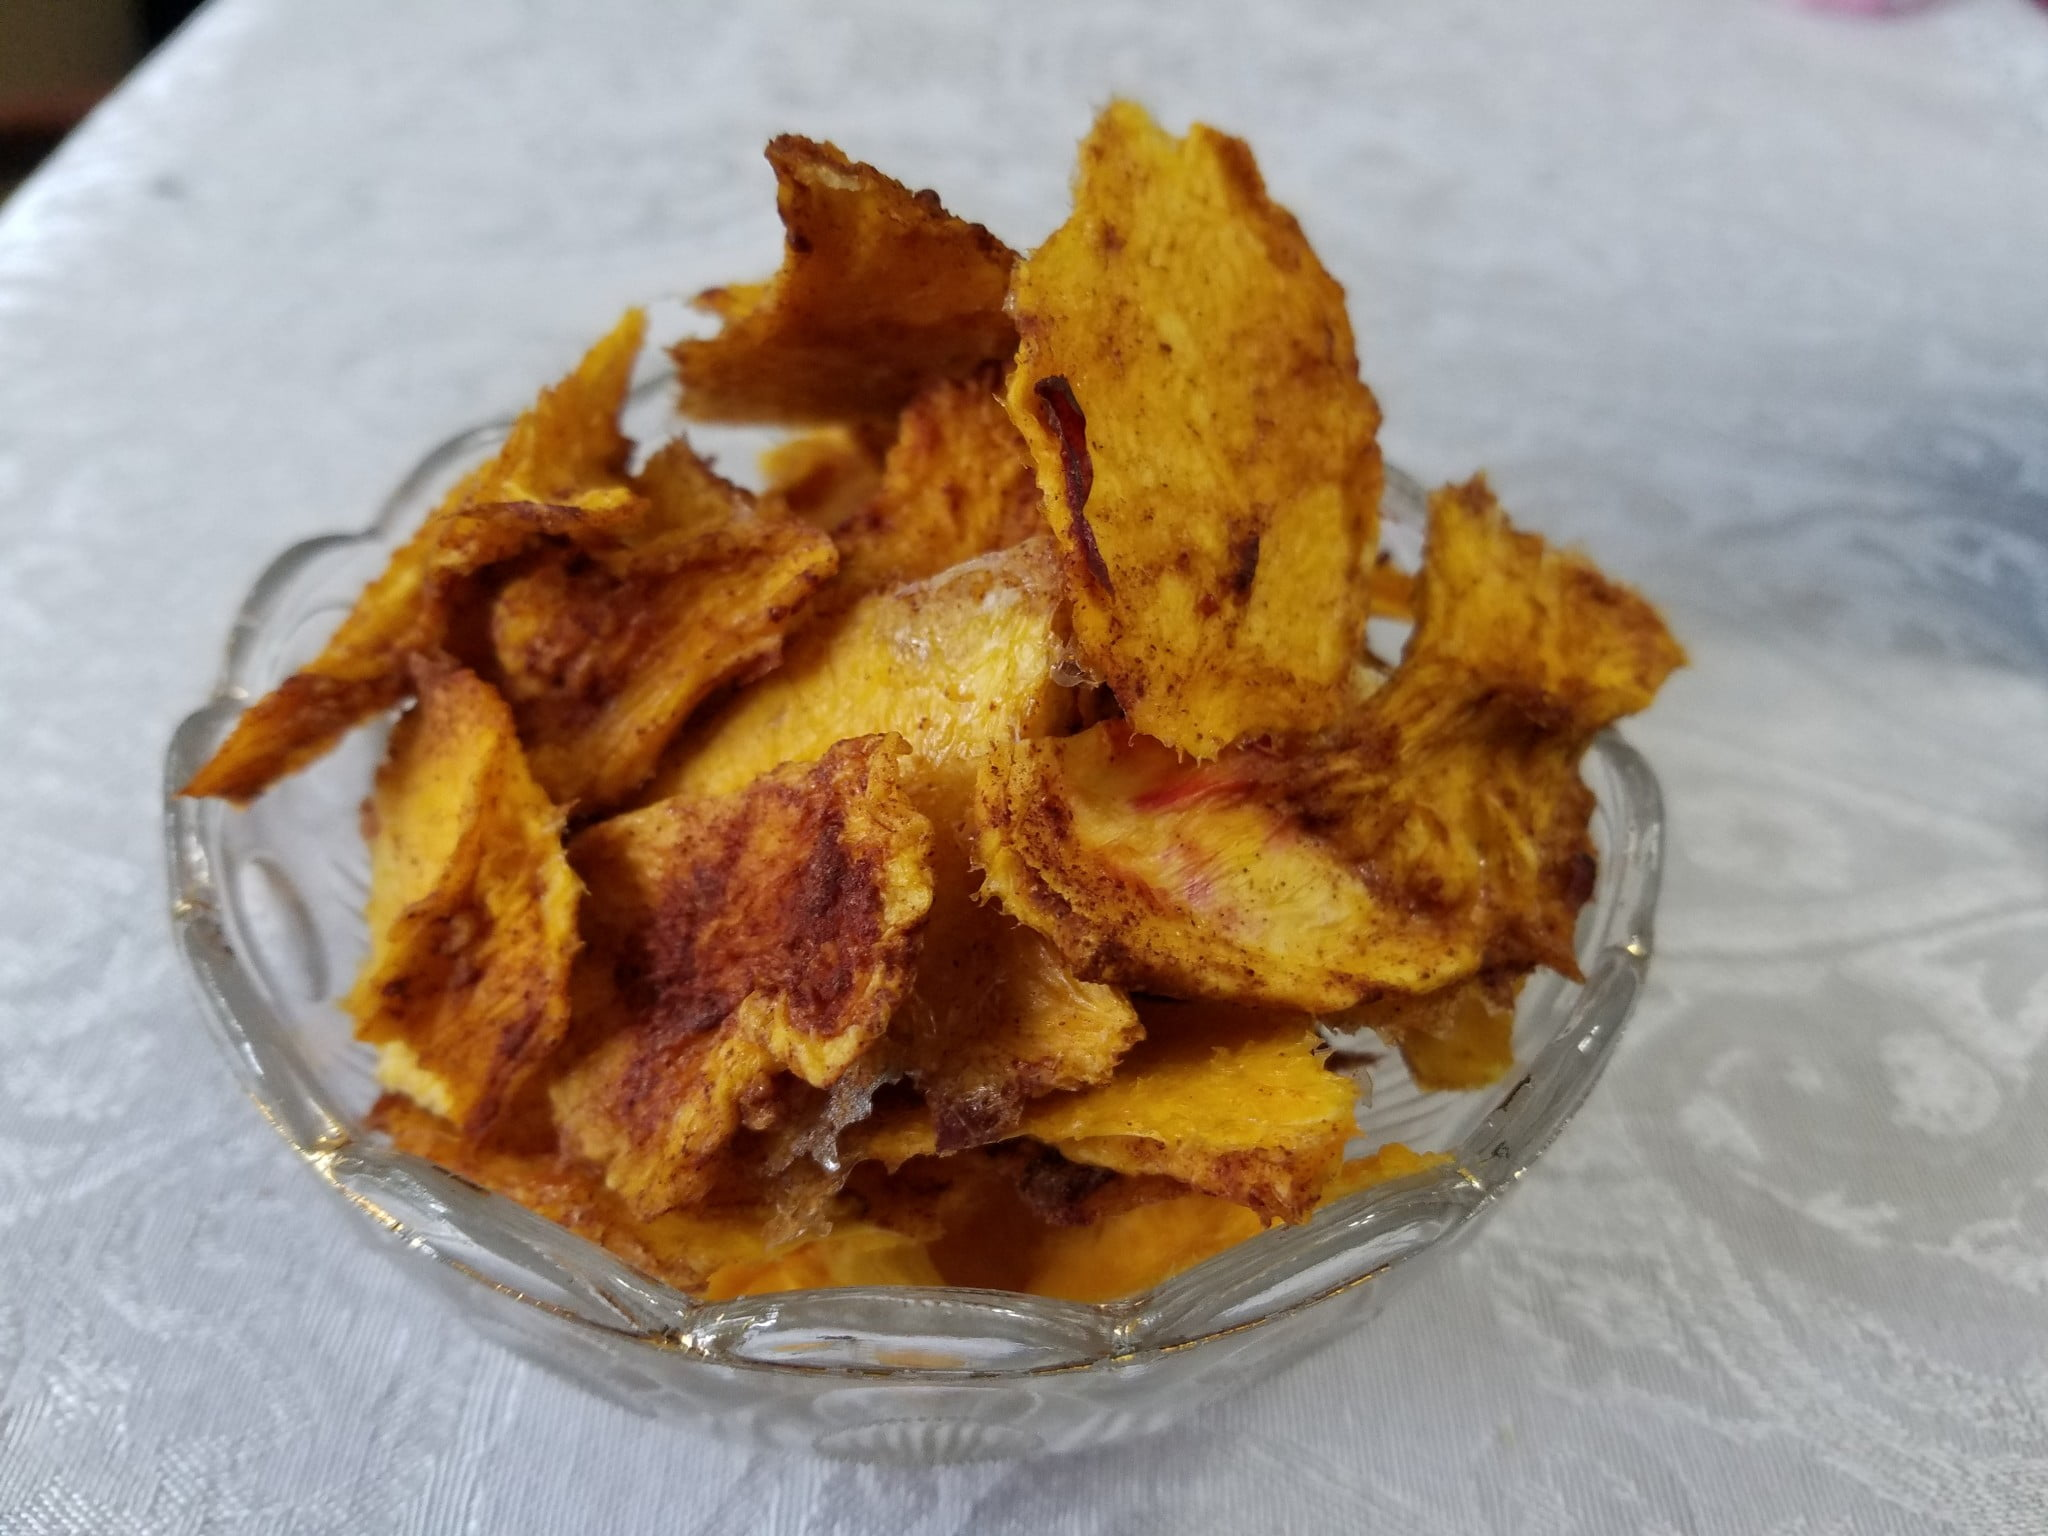 Dehydrated Peaches and Nectarines